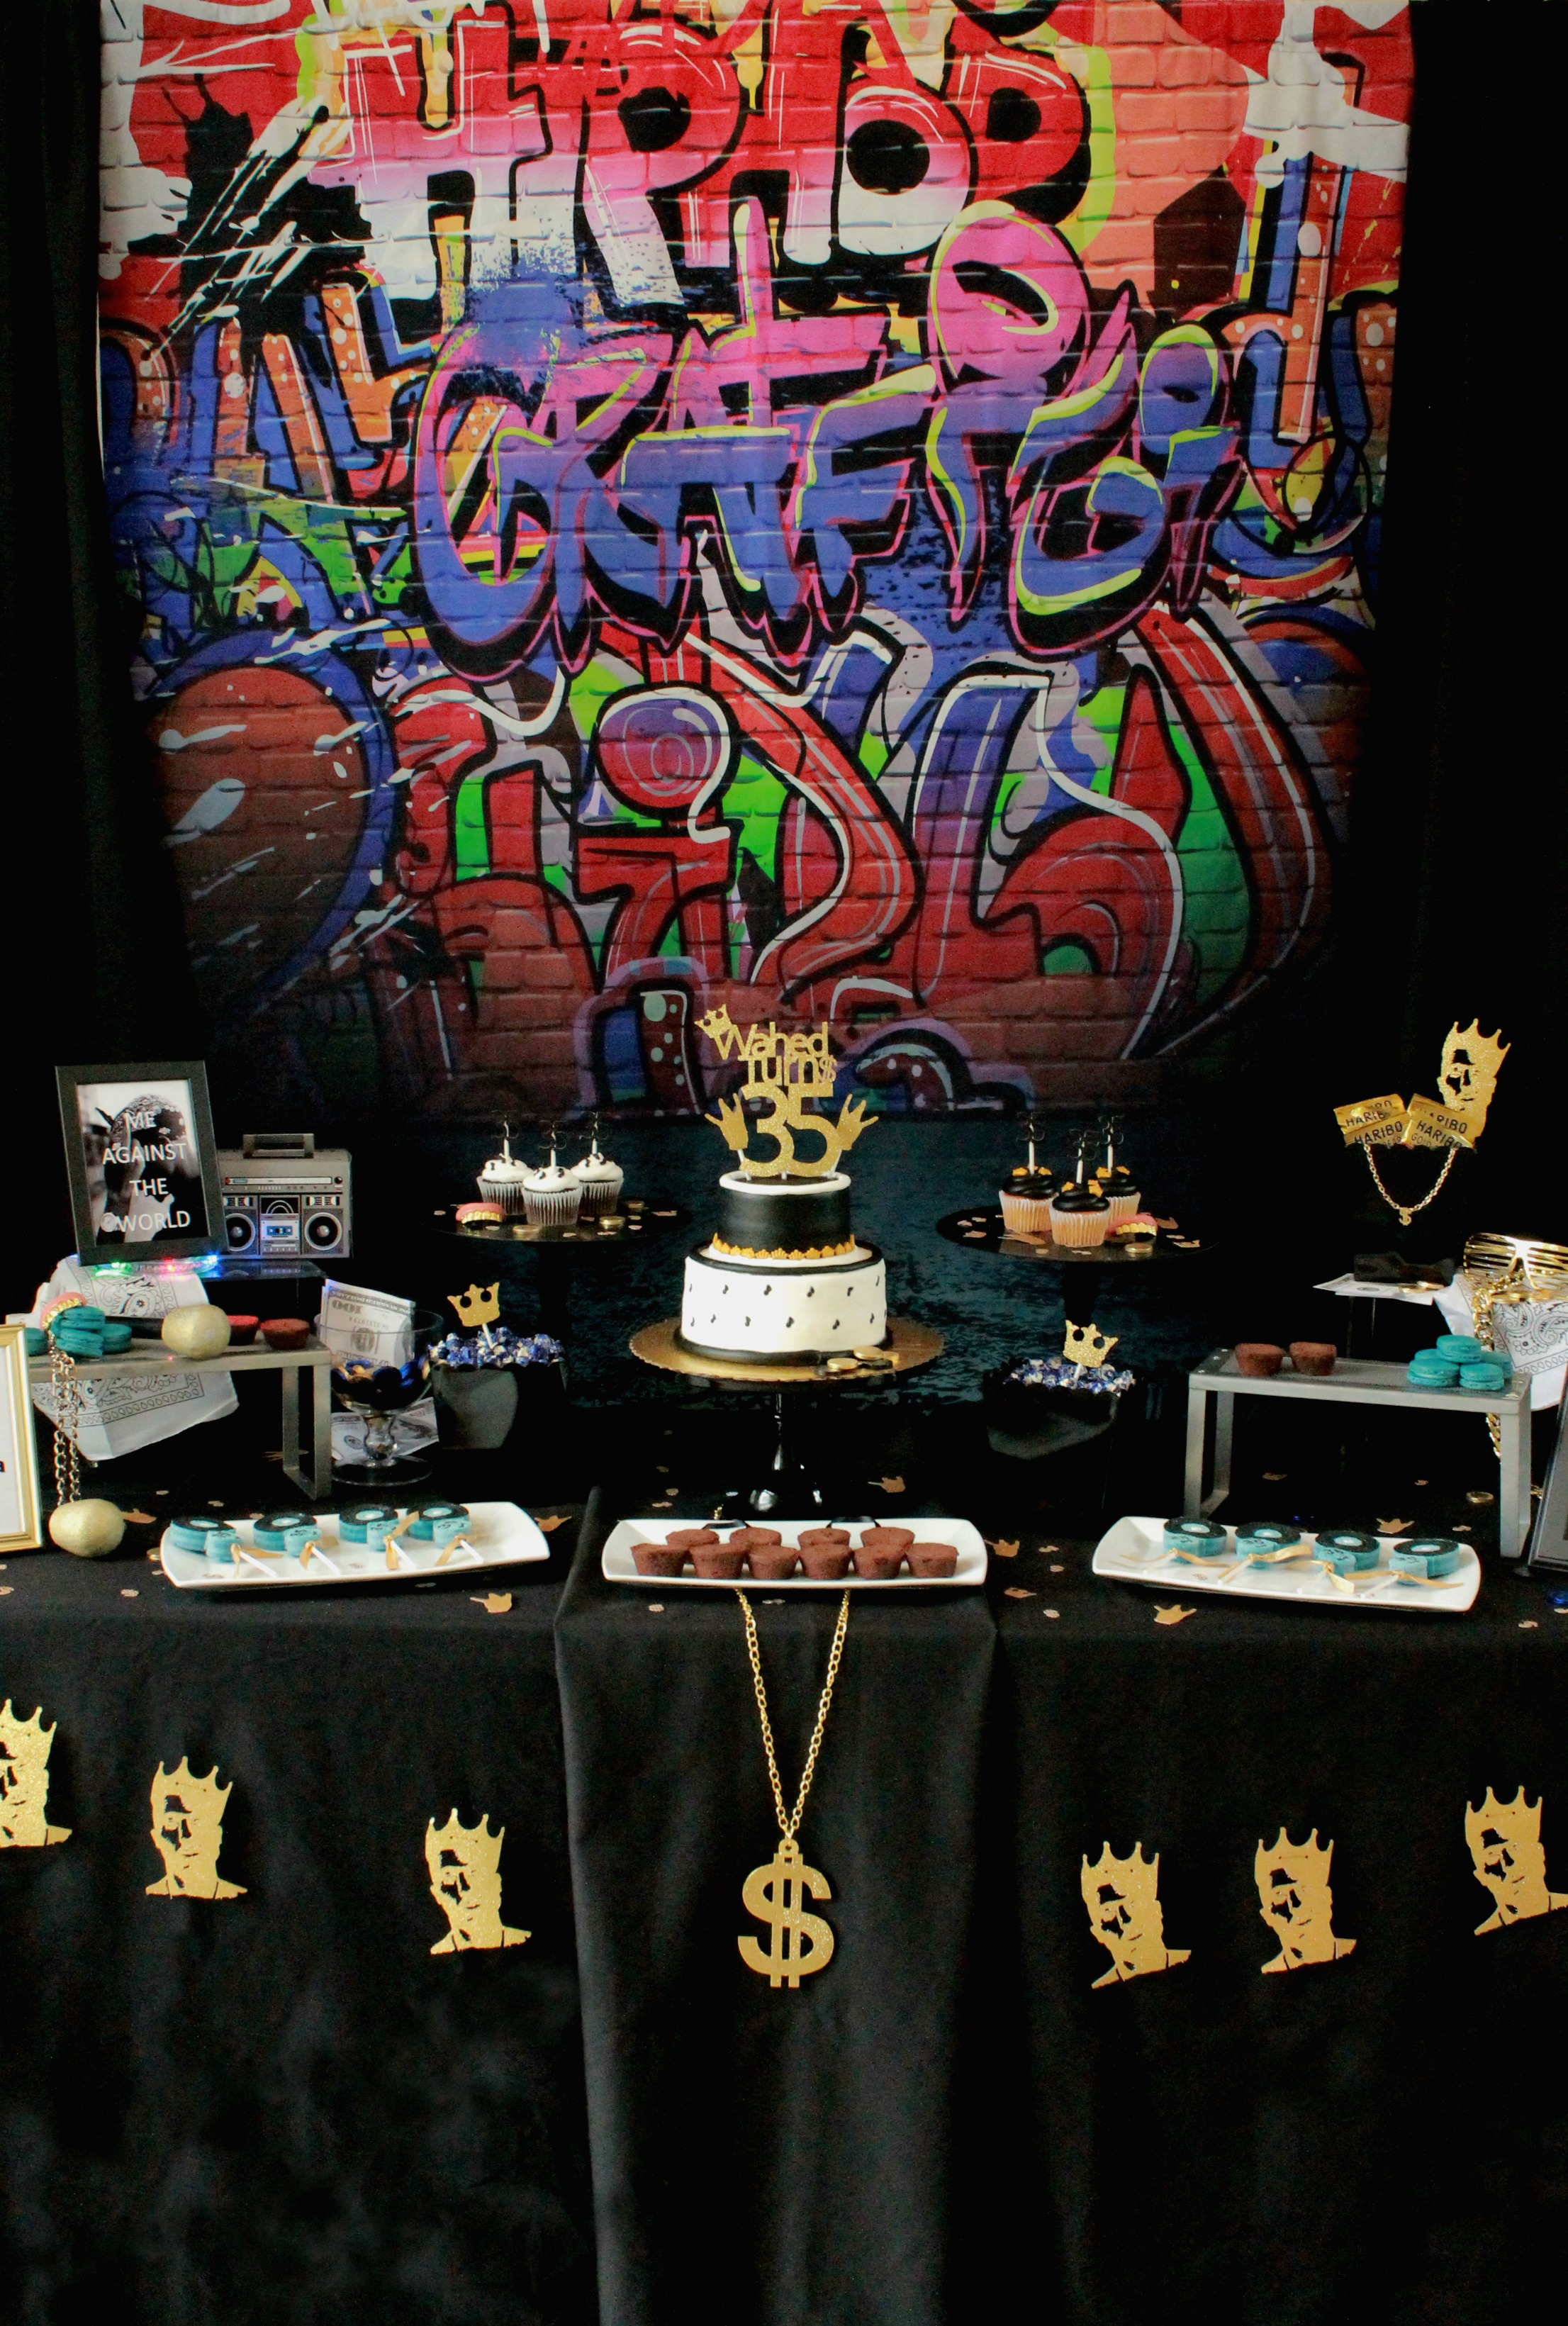 Hop Hop Party-Rap Party-Hiphop Party Ideas-www.SugarPartiesLA.com.jpg